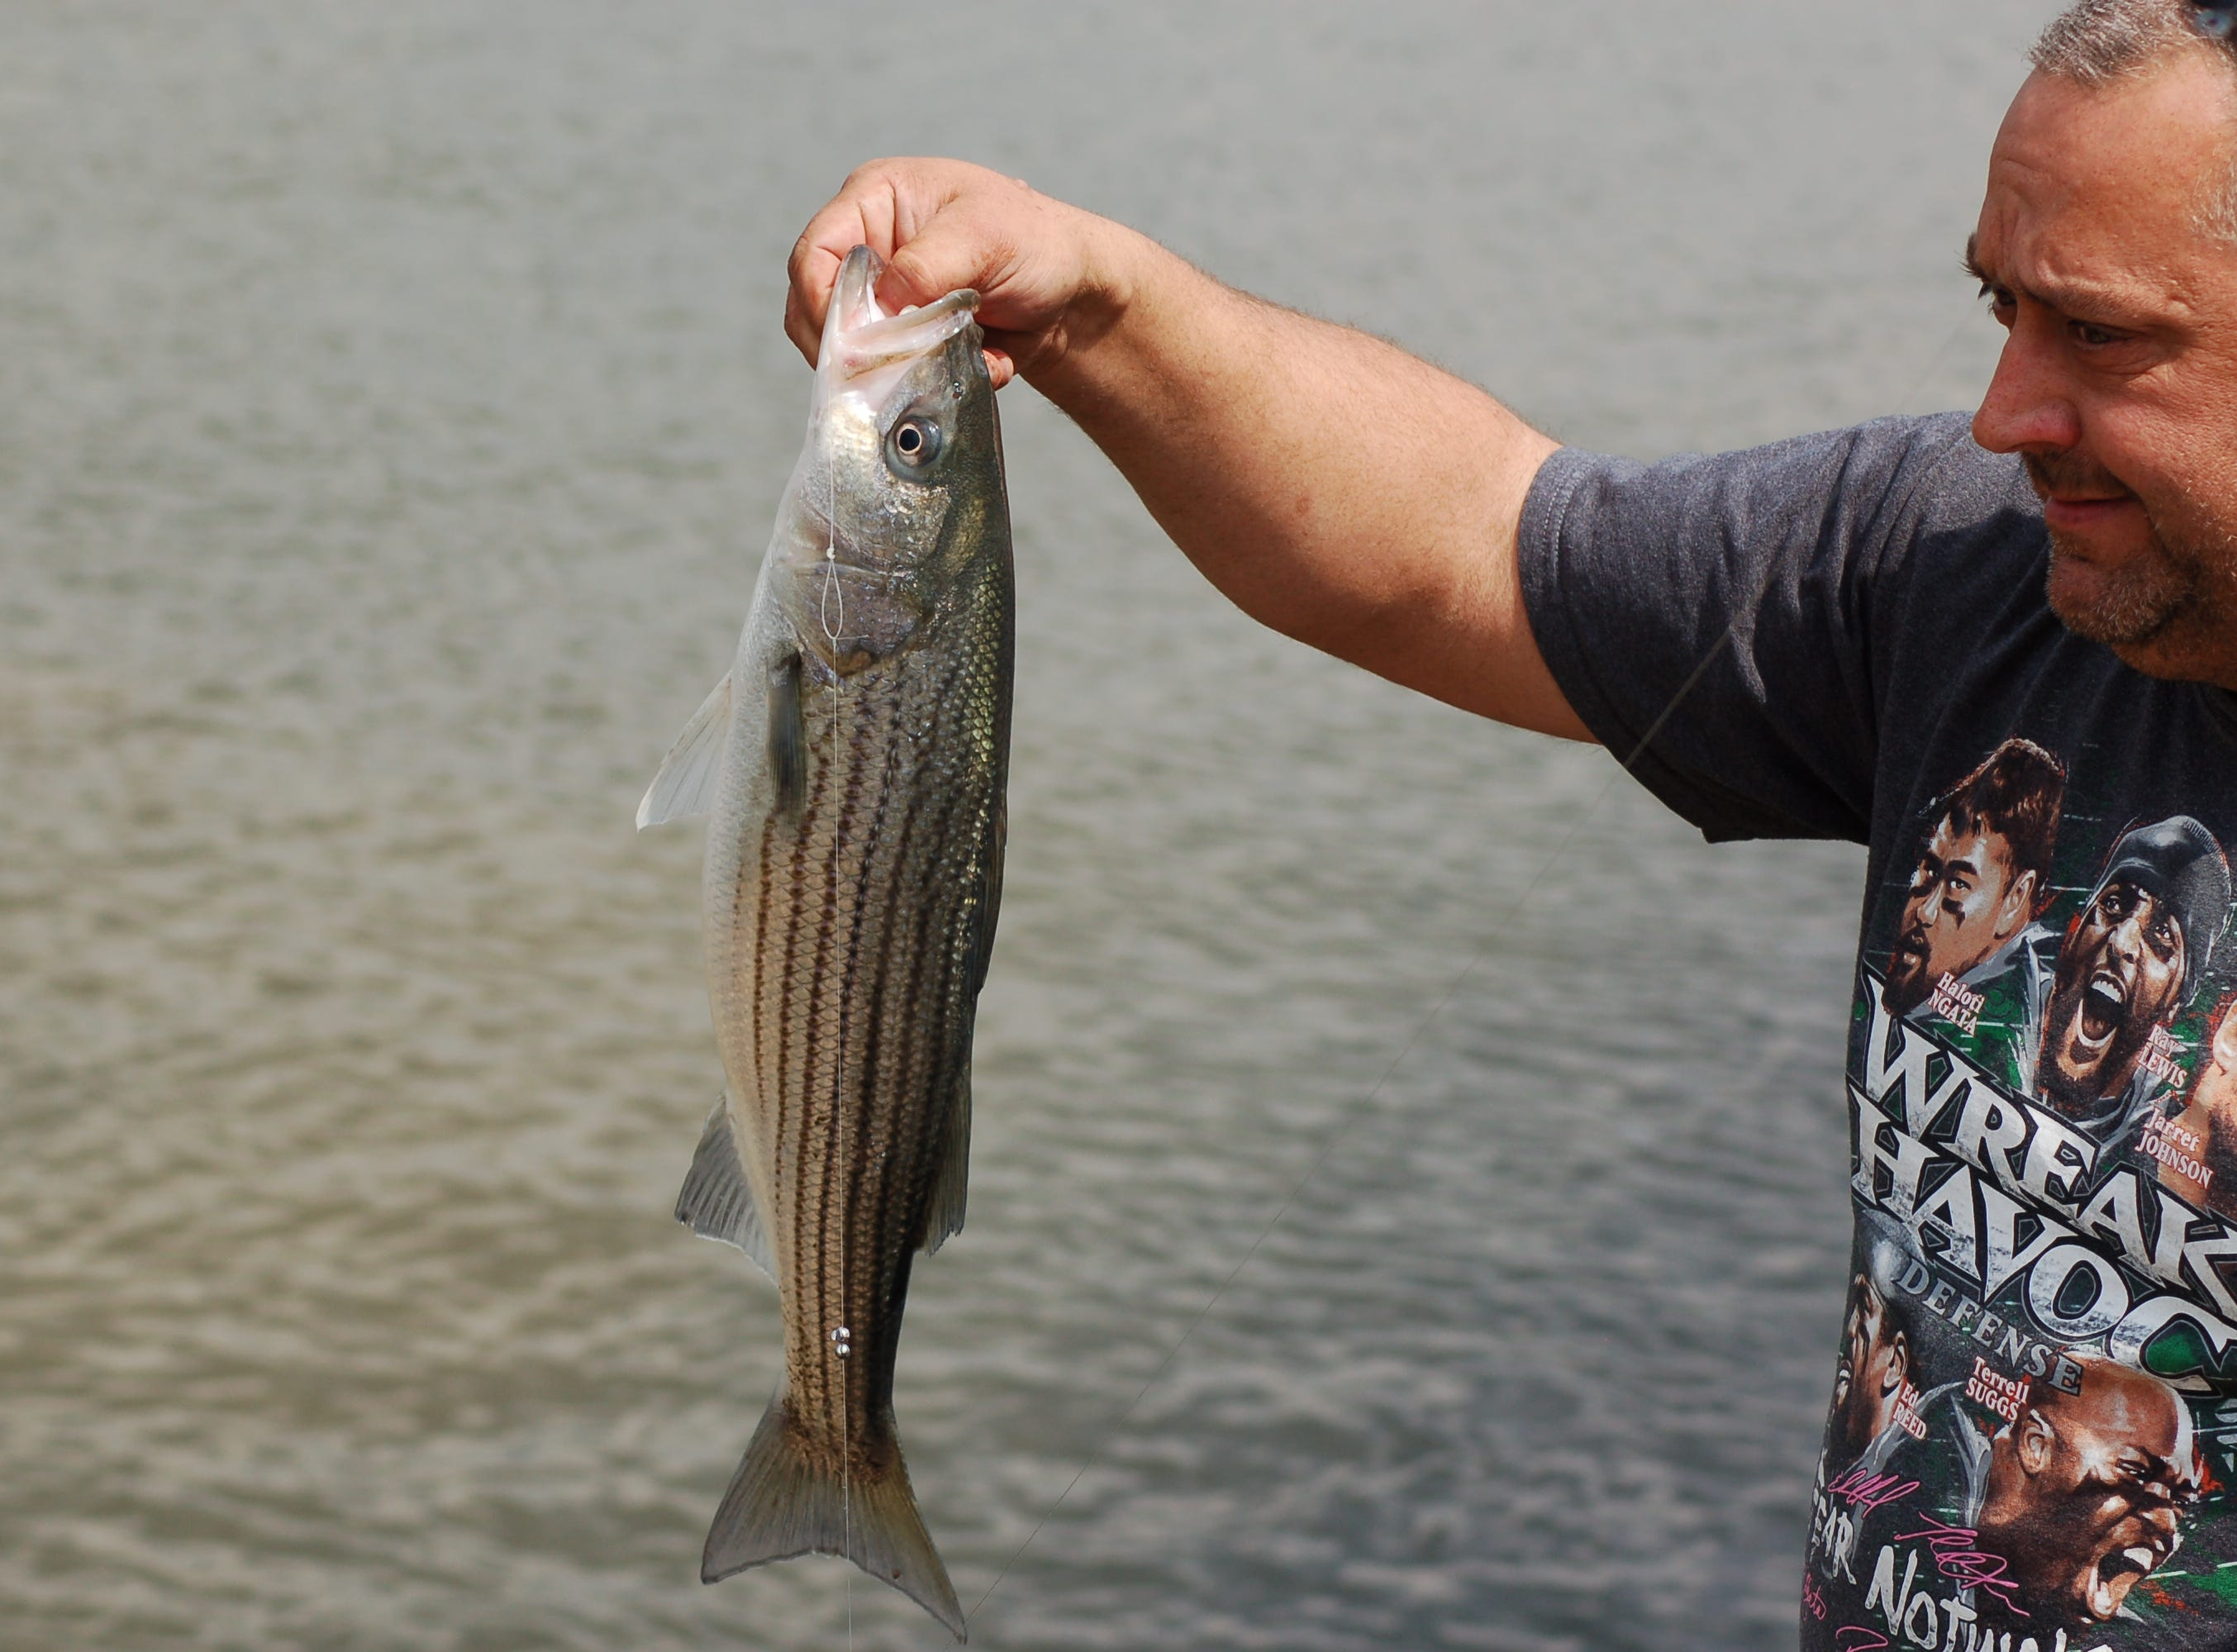 Striped bass are making their way up the lower Susquehanna.